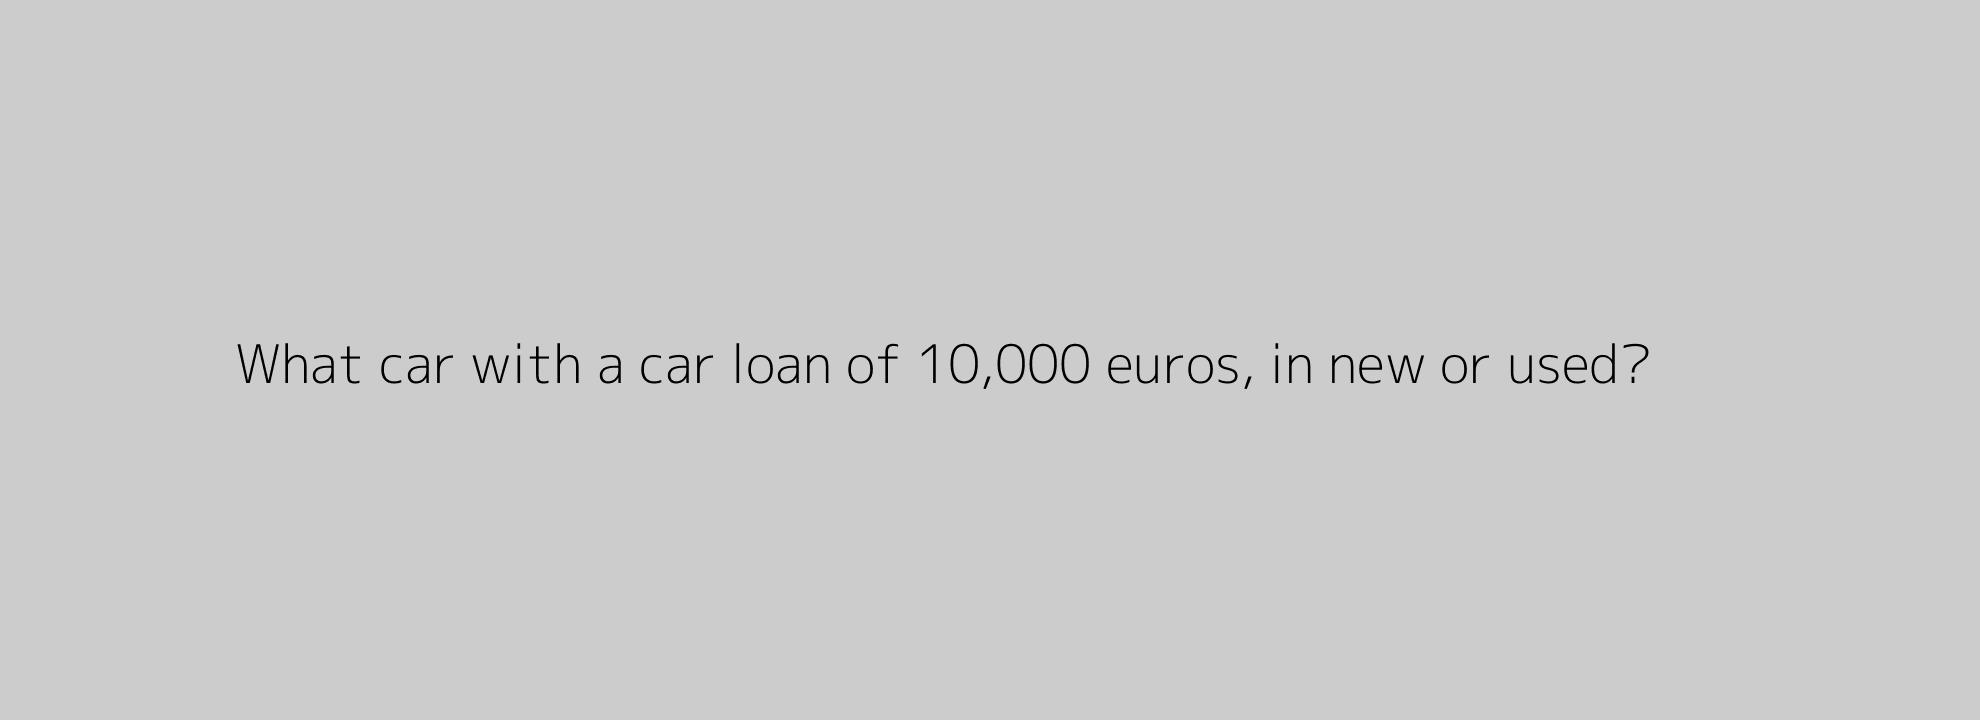 What car with a car loan of 10,000 euros, in new or used?